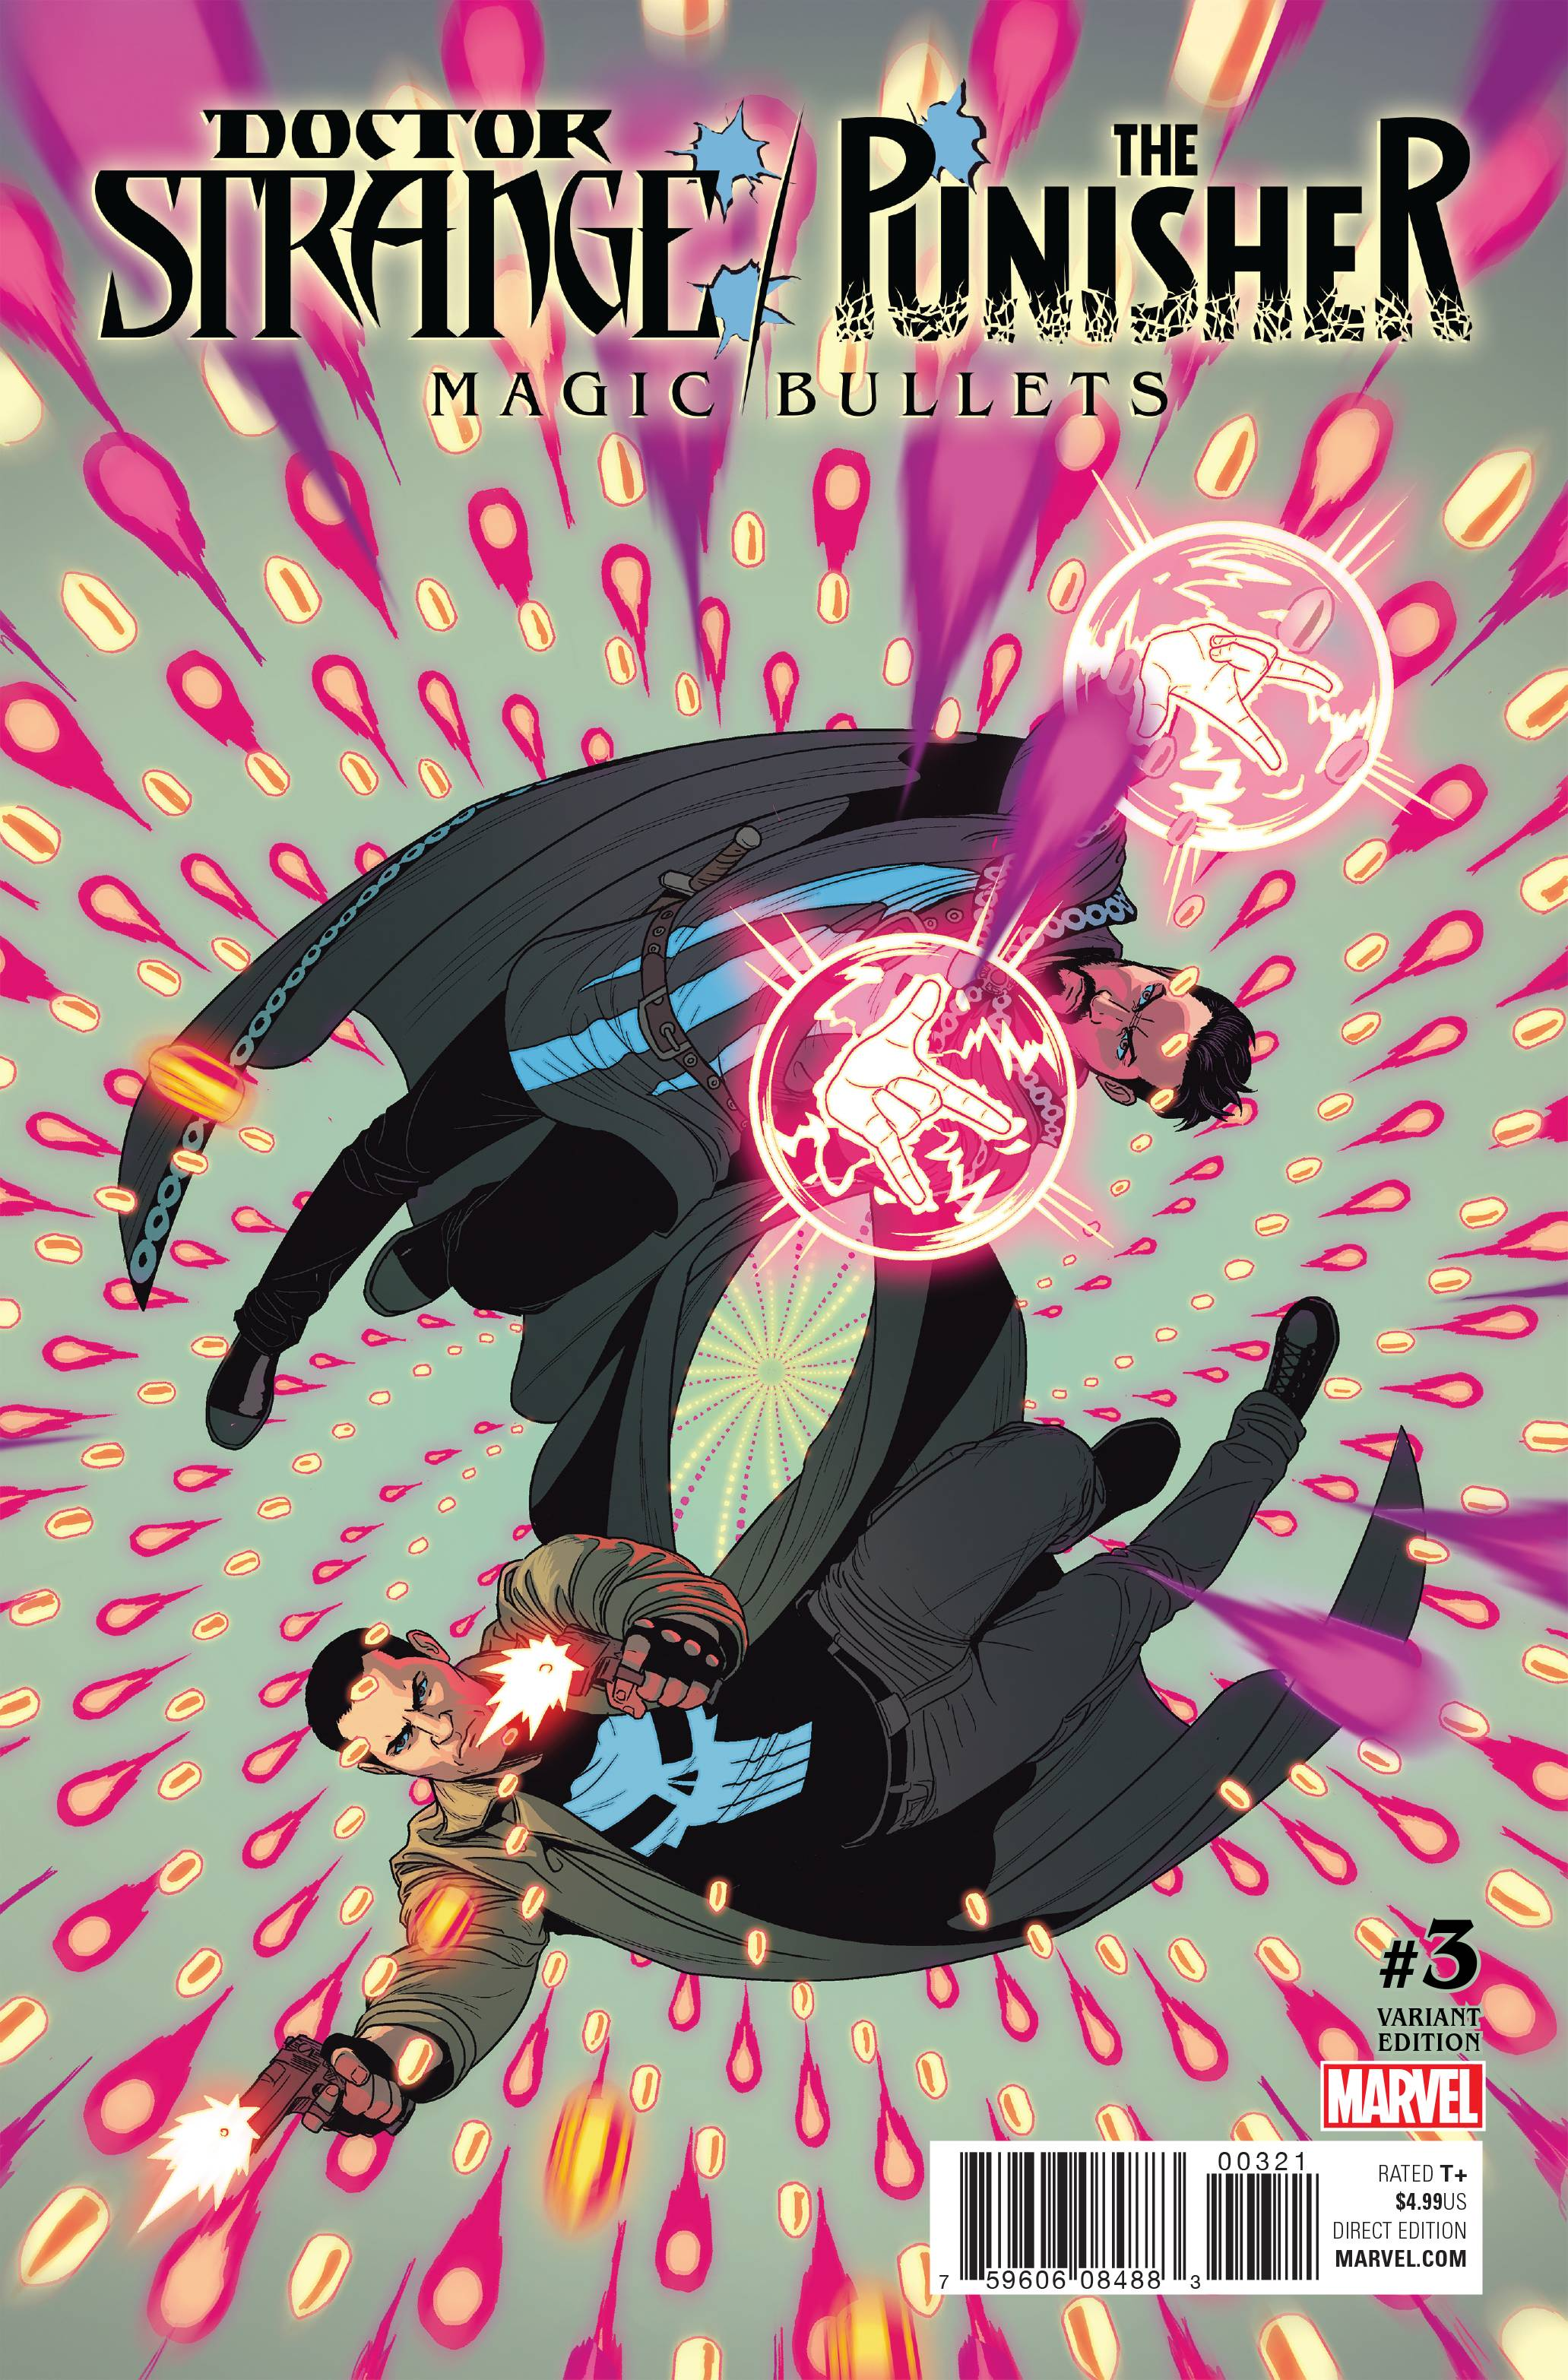 DOCTOR STRANGE PUNISHER MAGIC BULLETS #3